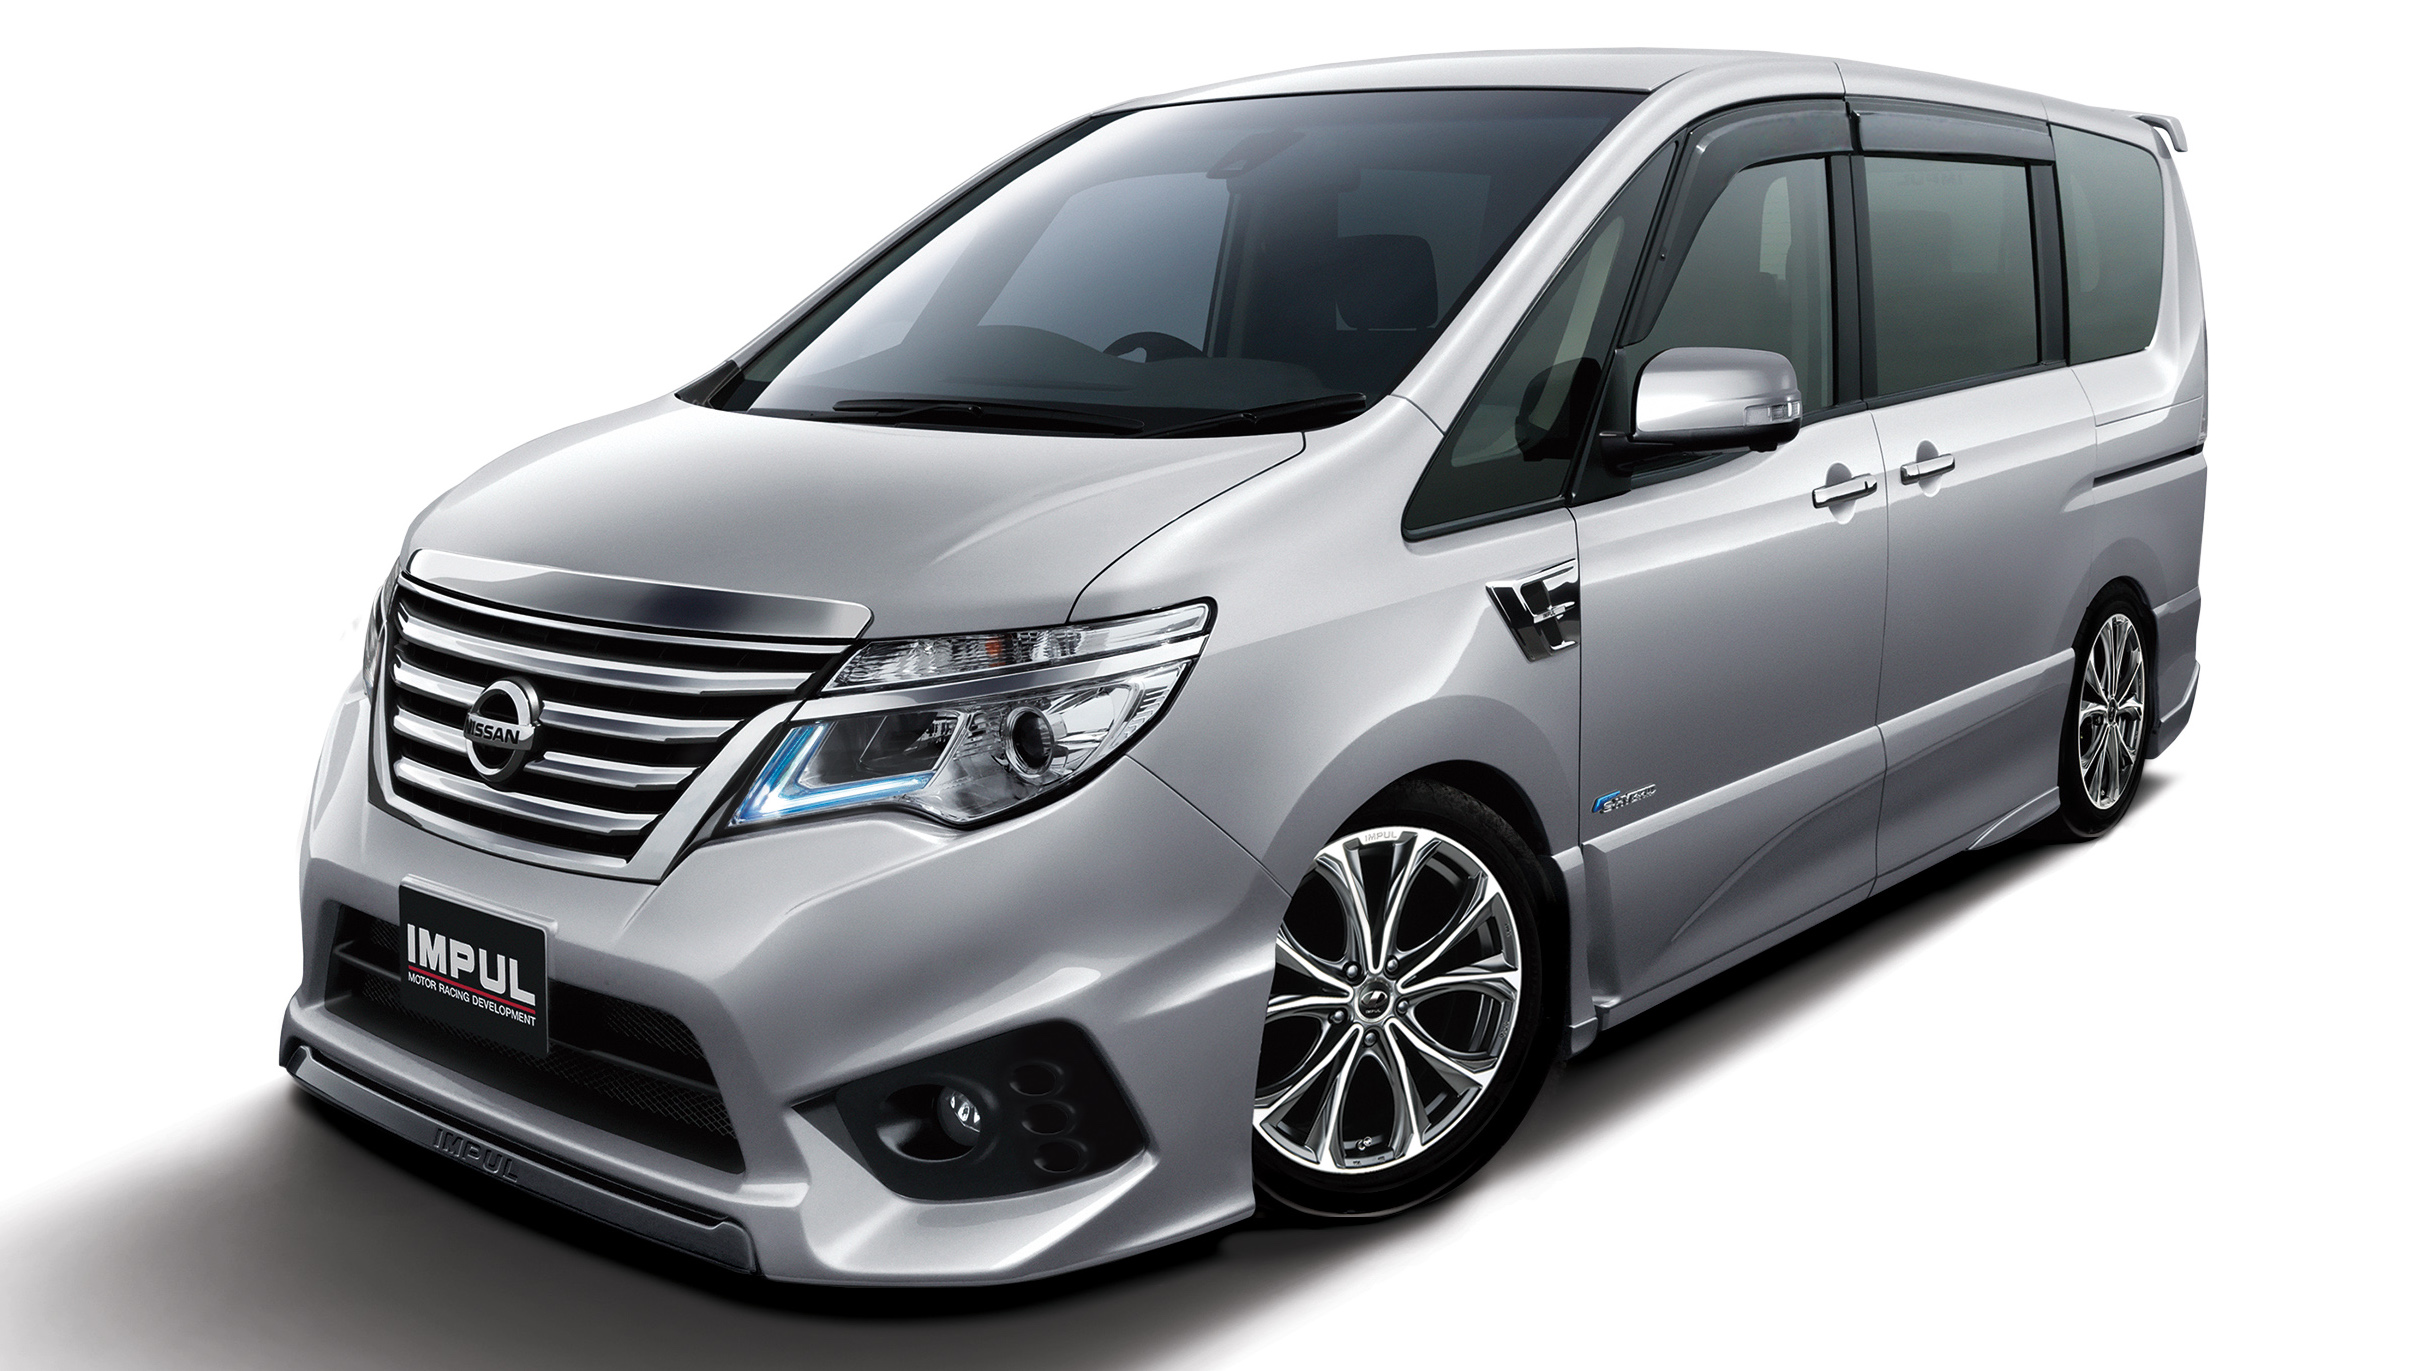 nissan serena s hybrid tuned by impul launched in malaysia two variants rm146k and rm156k. Black Bedroom Furniture Sets. Home Design Ideas